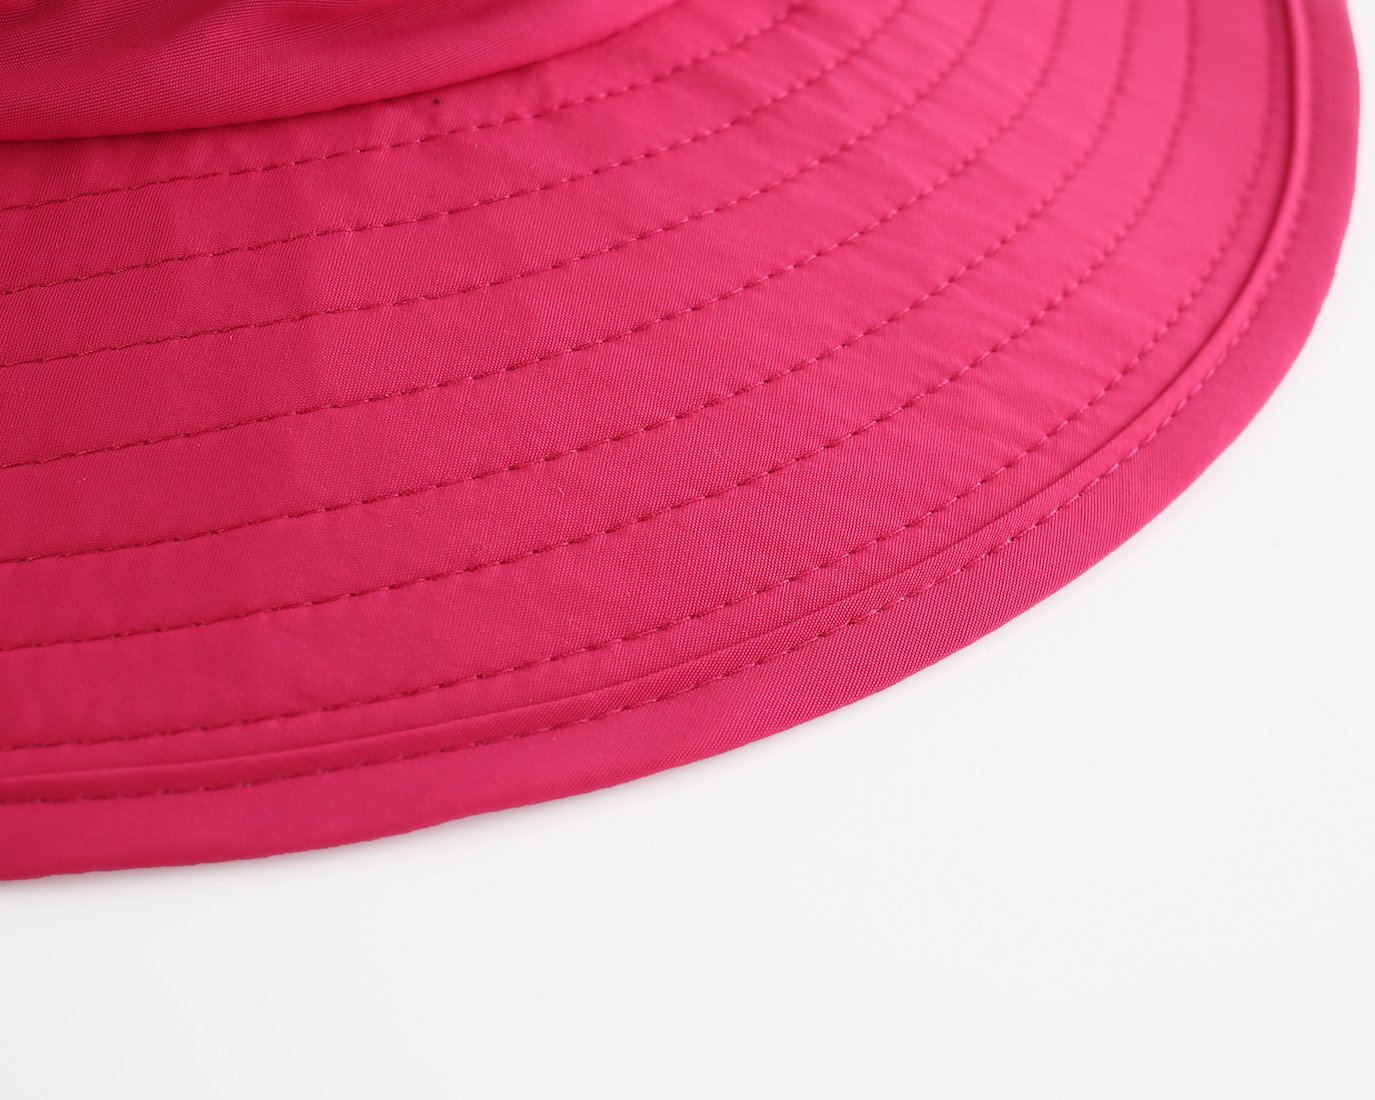 Home Prefer Outdoor UPF50+ Mesh Sun Hat Wide Brim Fishing Hat with Neck Flap  HP0411-DG 124ca1403328